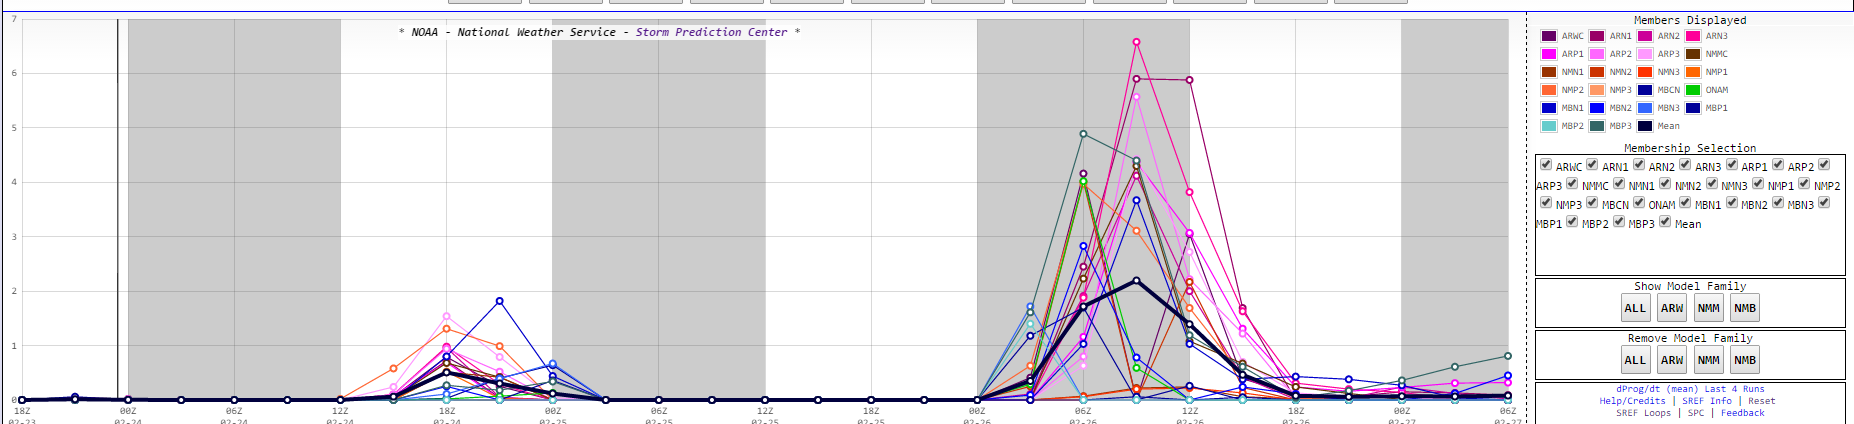 SREF plumes from Rocky Mount, NC.